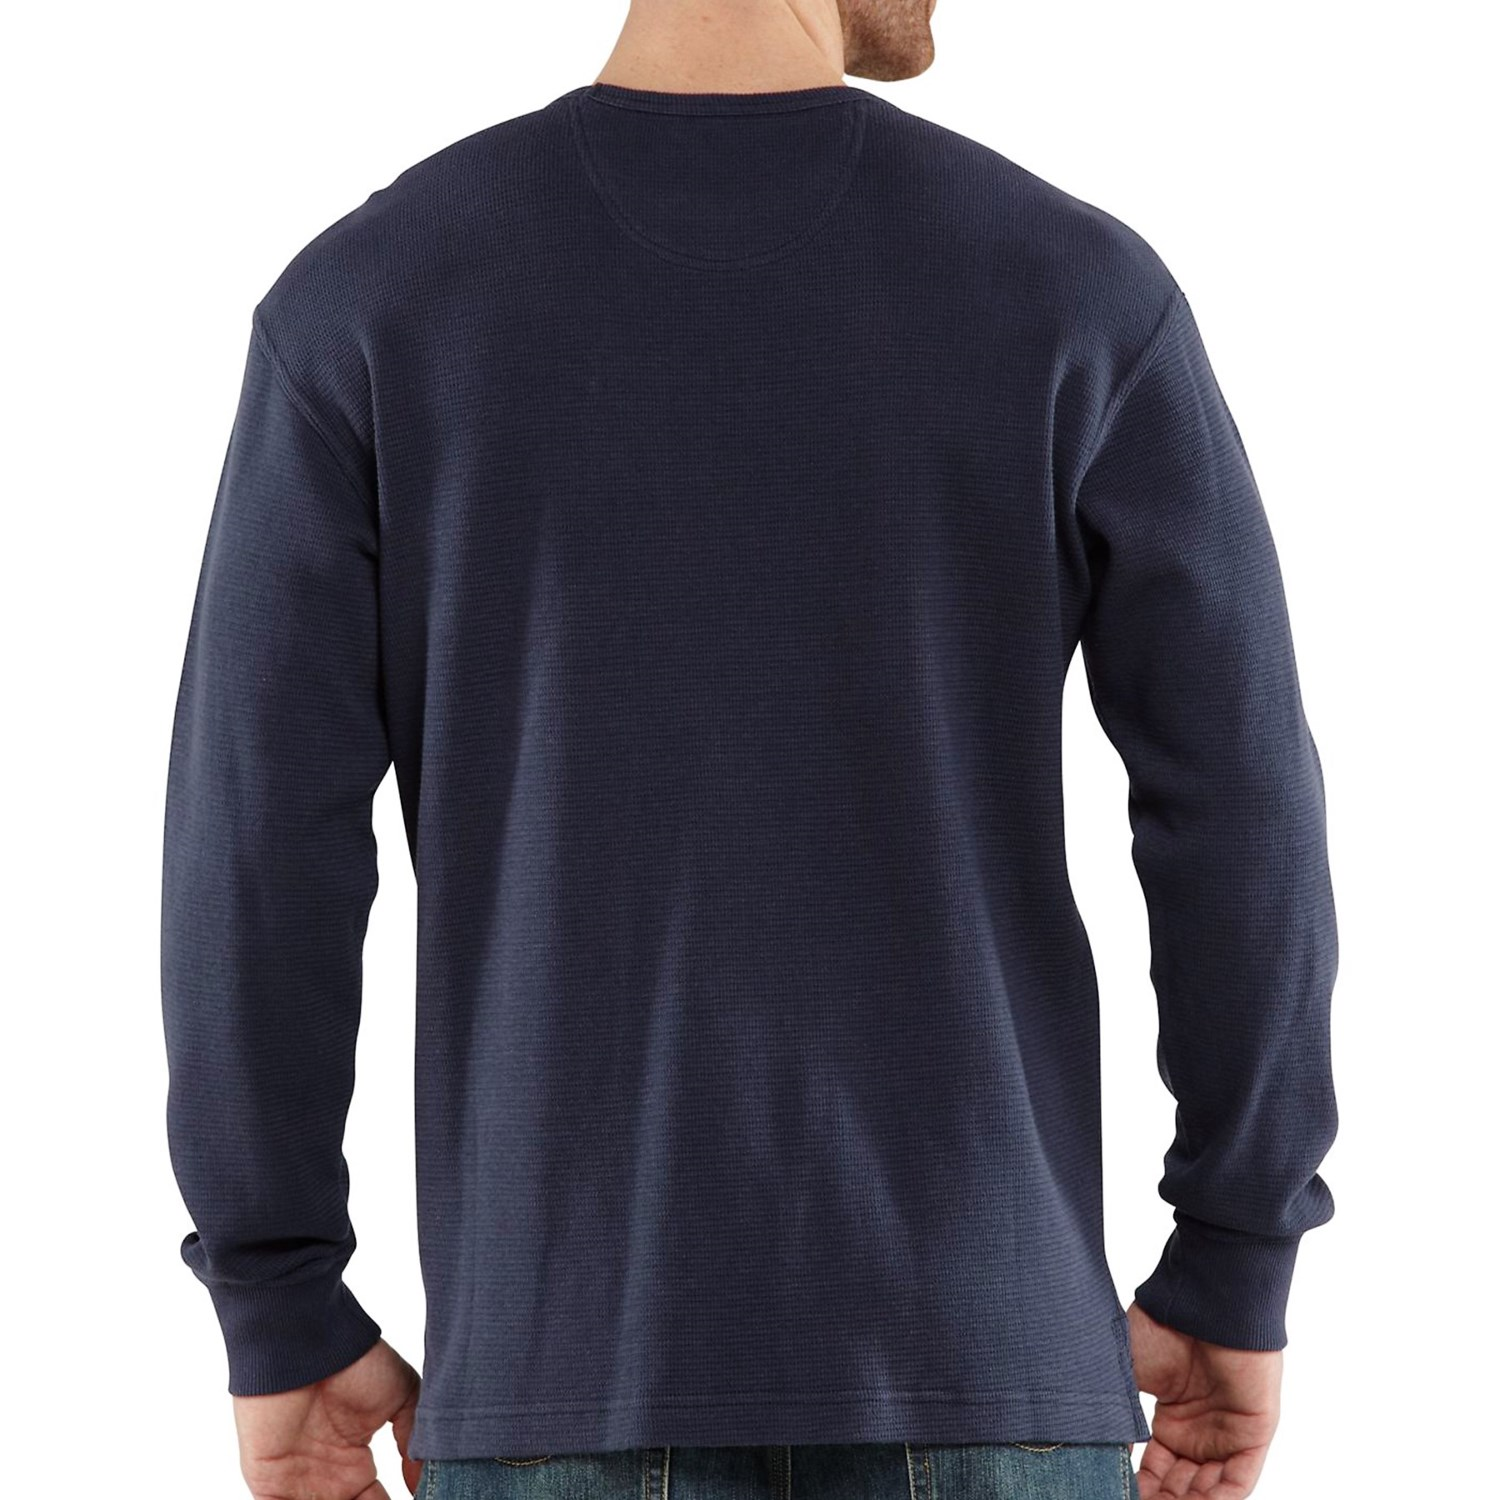 Carhartt graphic t shirt for big and tall men for Men s big tall shirts